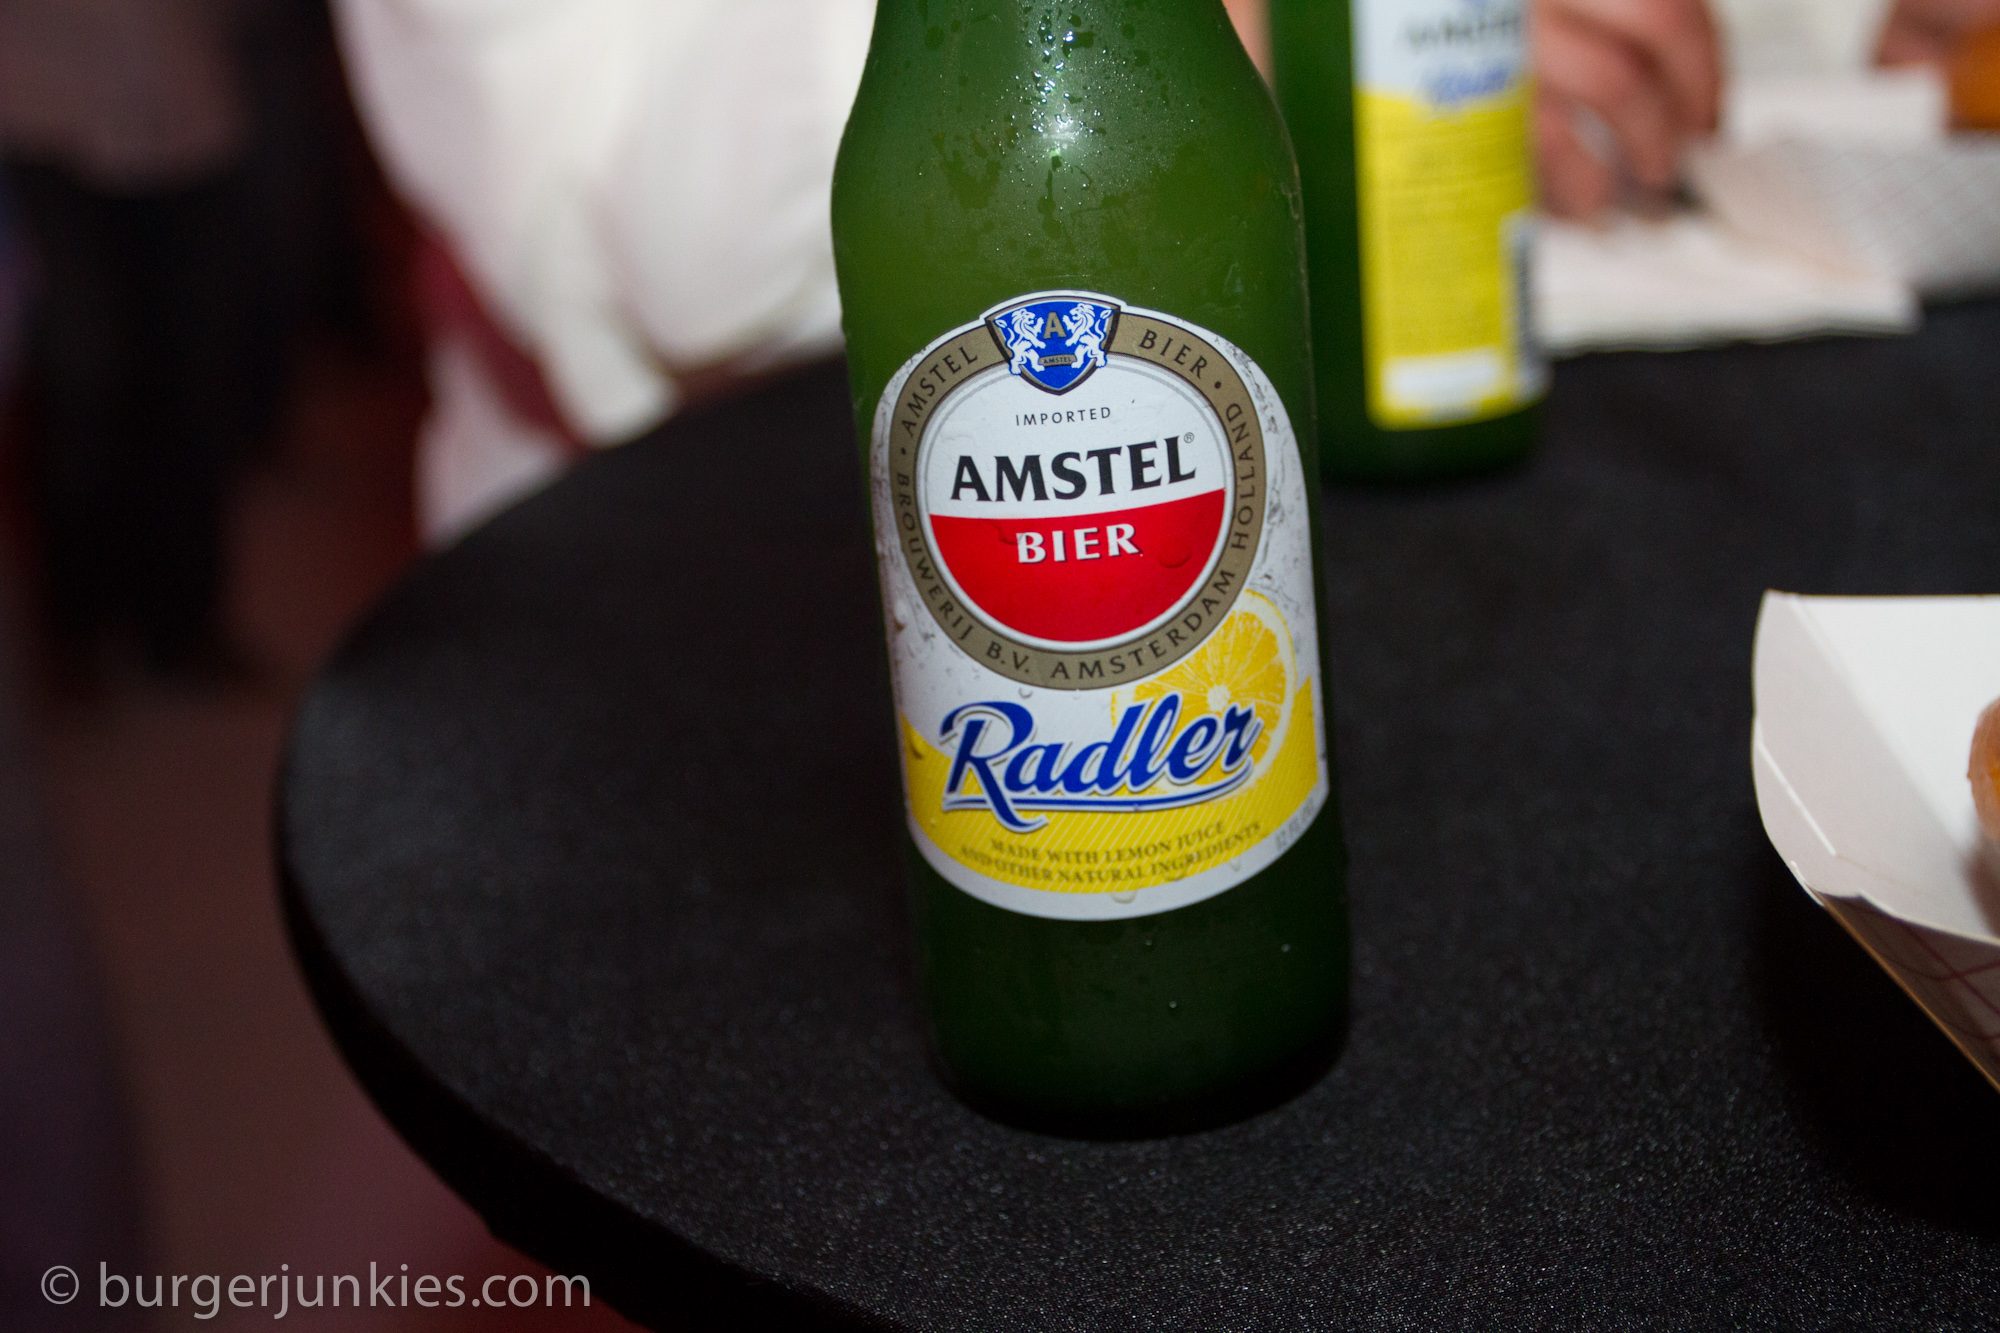 Amstel Light Radler